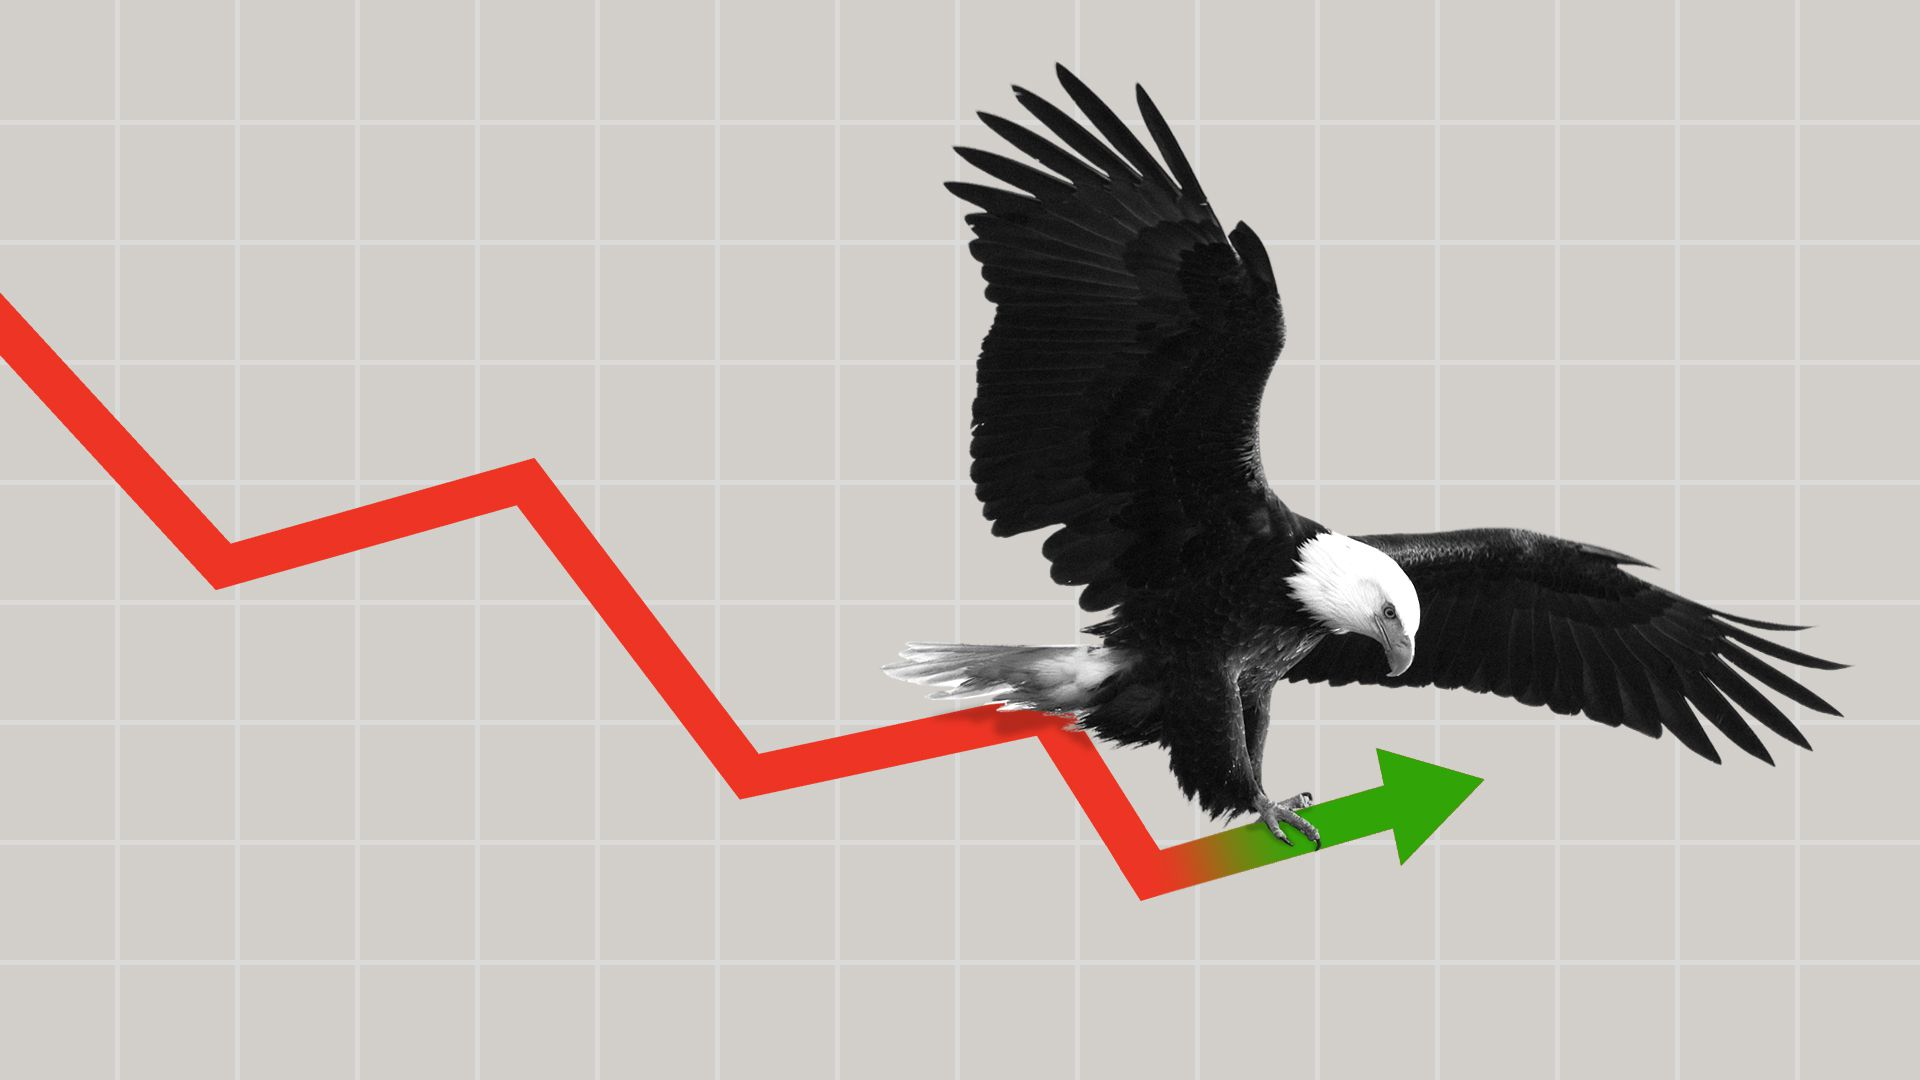 This is an eagle riding on a stock chart